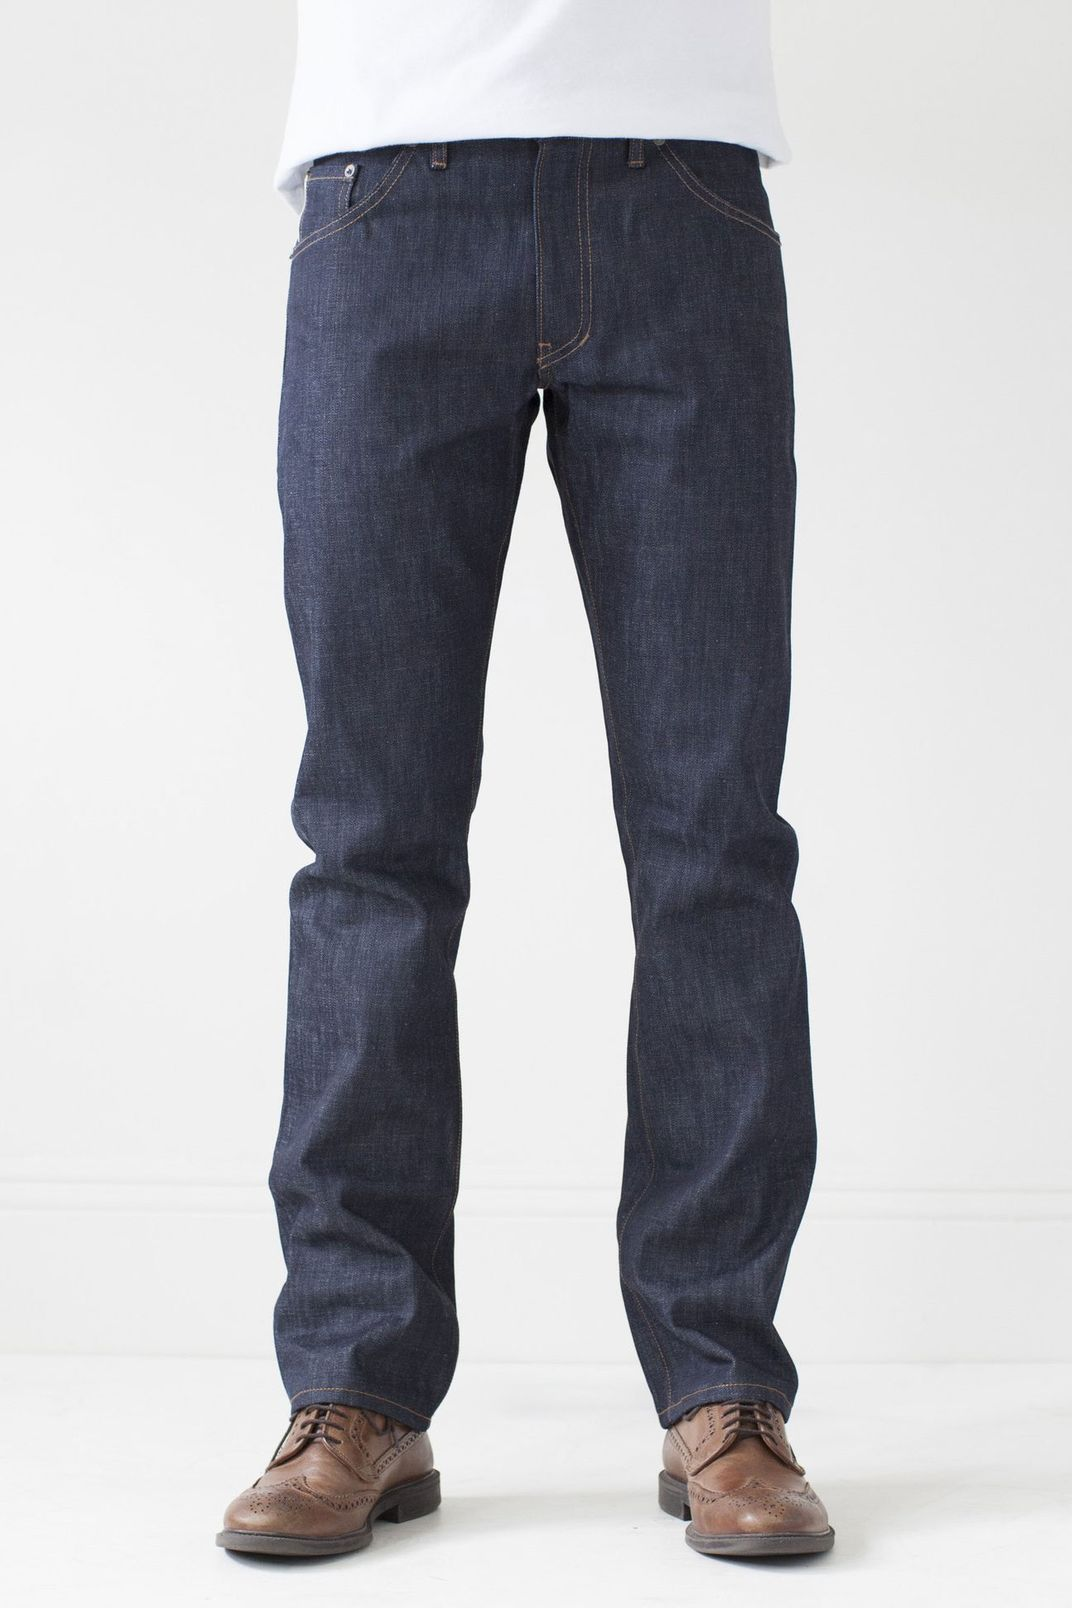 6941f0d3fbf Raleigh Denim Jones Thin Fit Jeans, Raw Selvedge